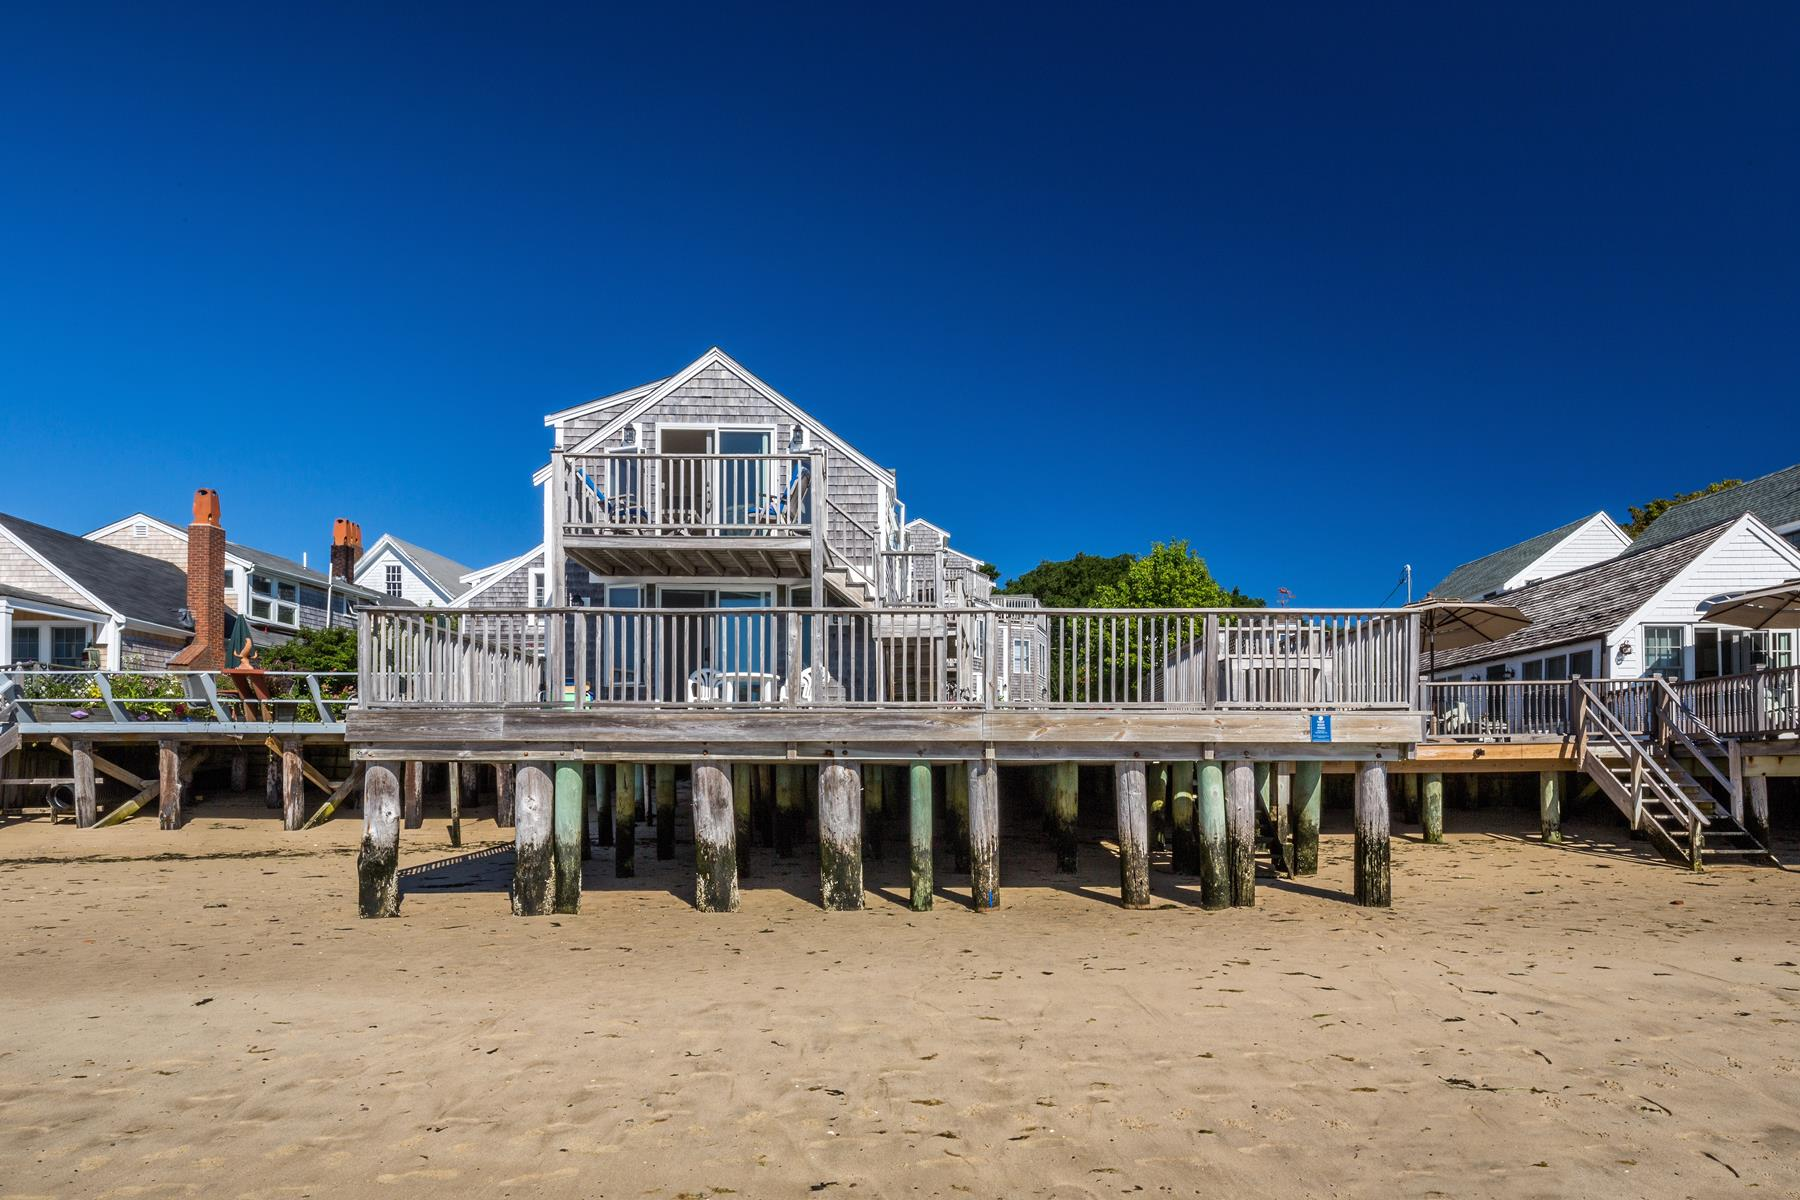 Condominium for Sale at Jones' Locker 45 Commercial Street, Unit 1 Provincetown, Massachusetts, 02657 United States